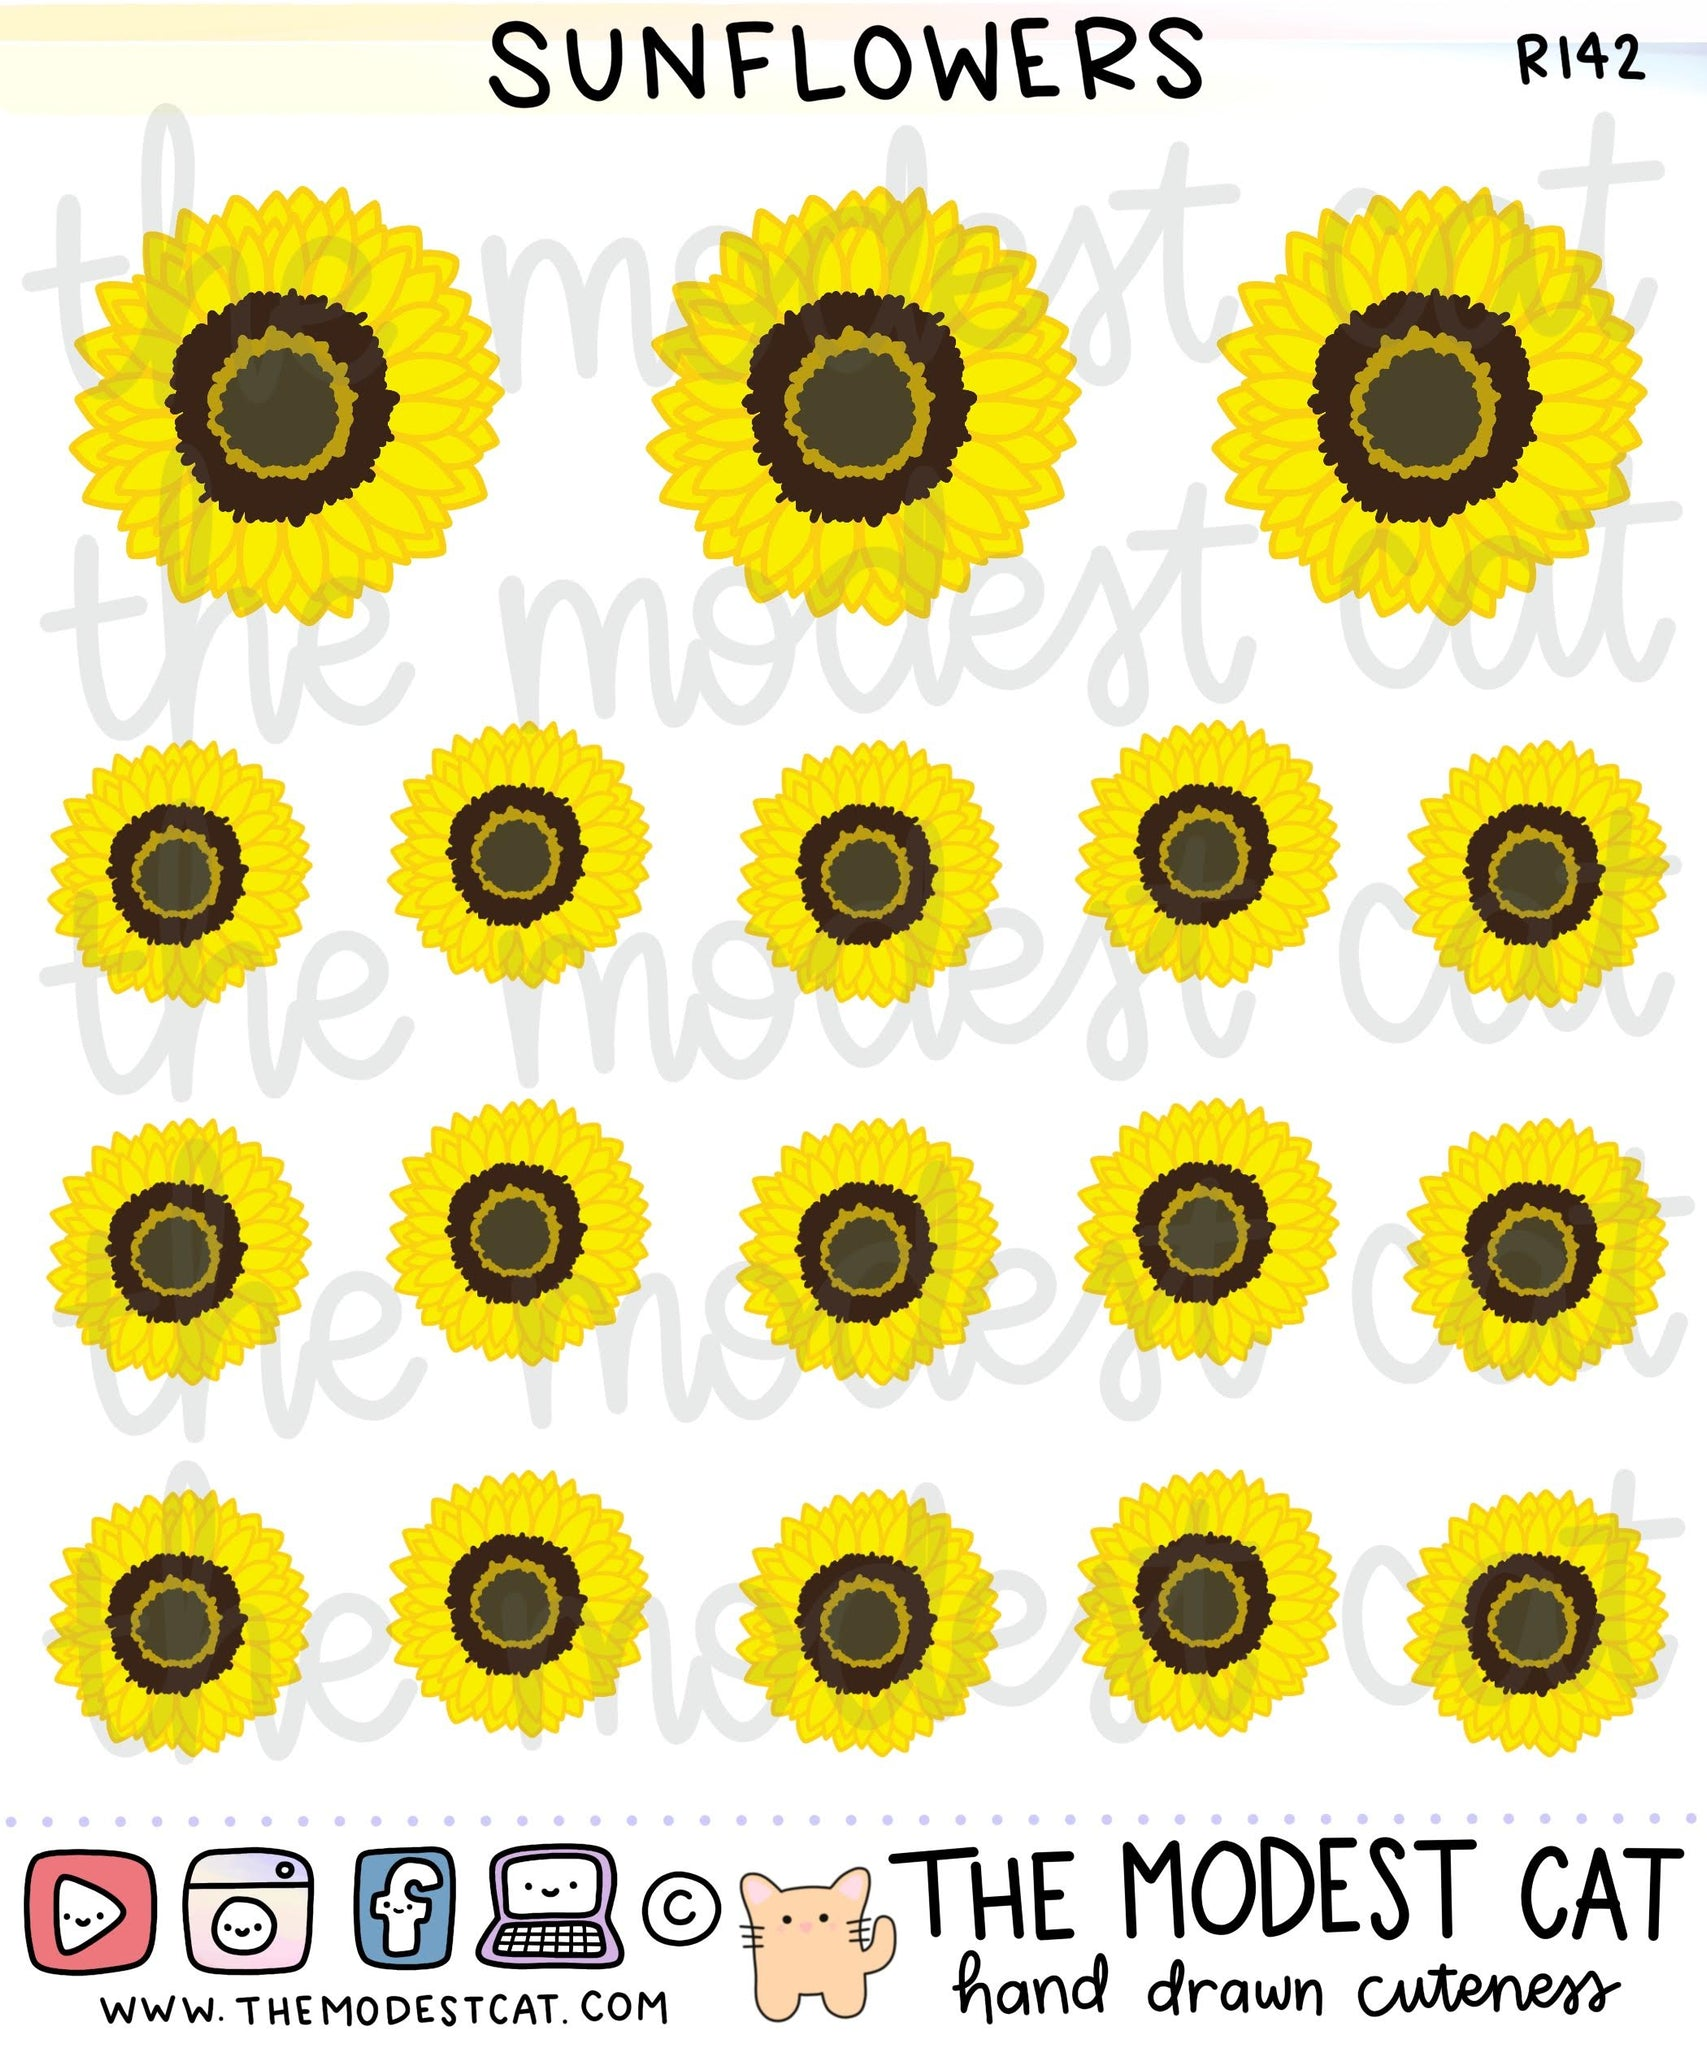 Sunflowers (R142)